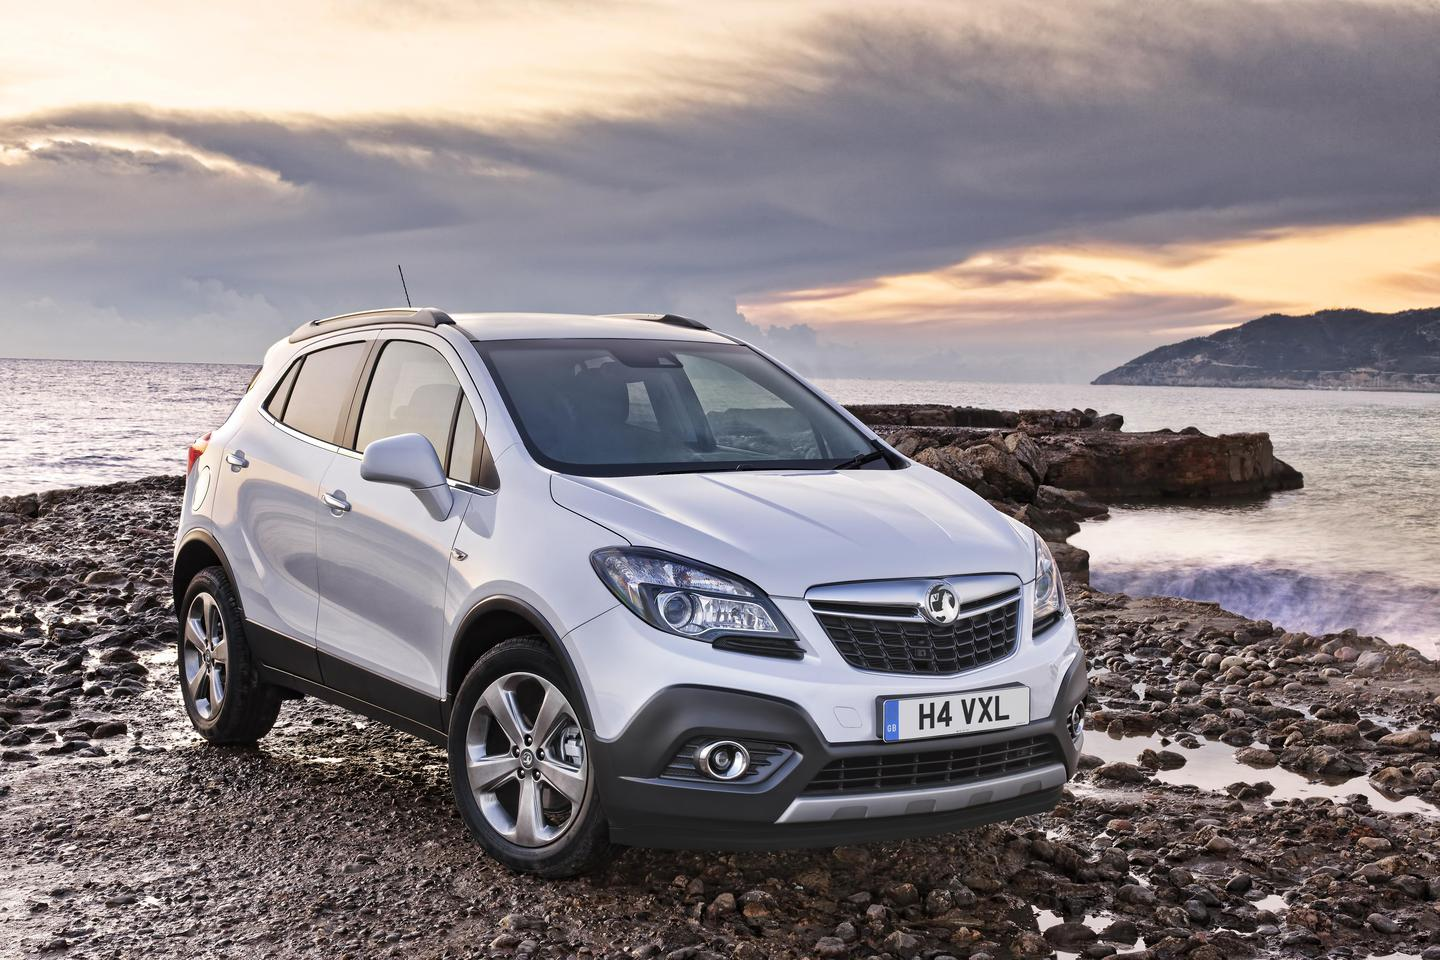 The Mokka will feature Advanced Adaptive Forward Lighting and High Beam Assist, Lane Departure Warning, Forward Collision Alert and second generation Traffic Sign Recognition